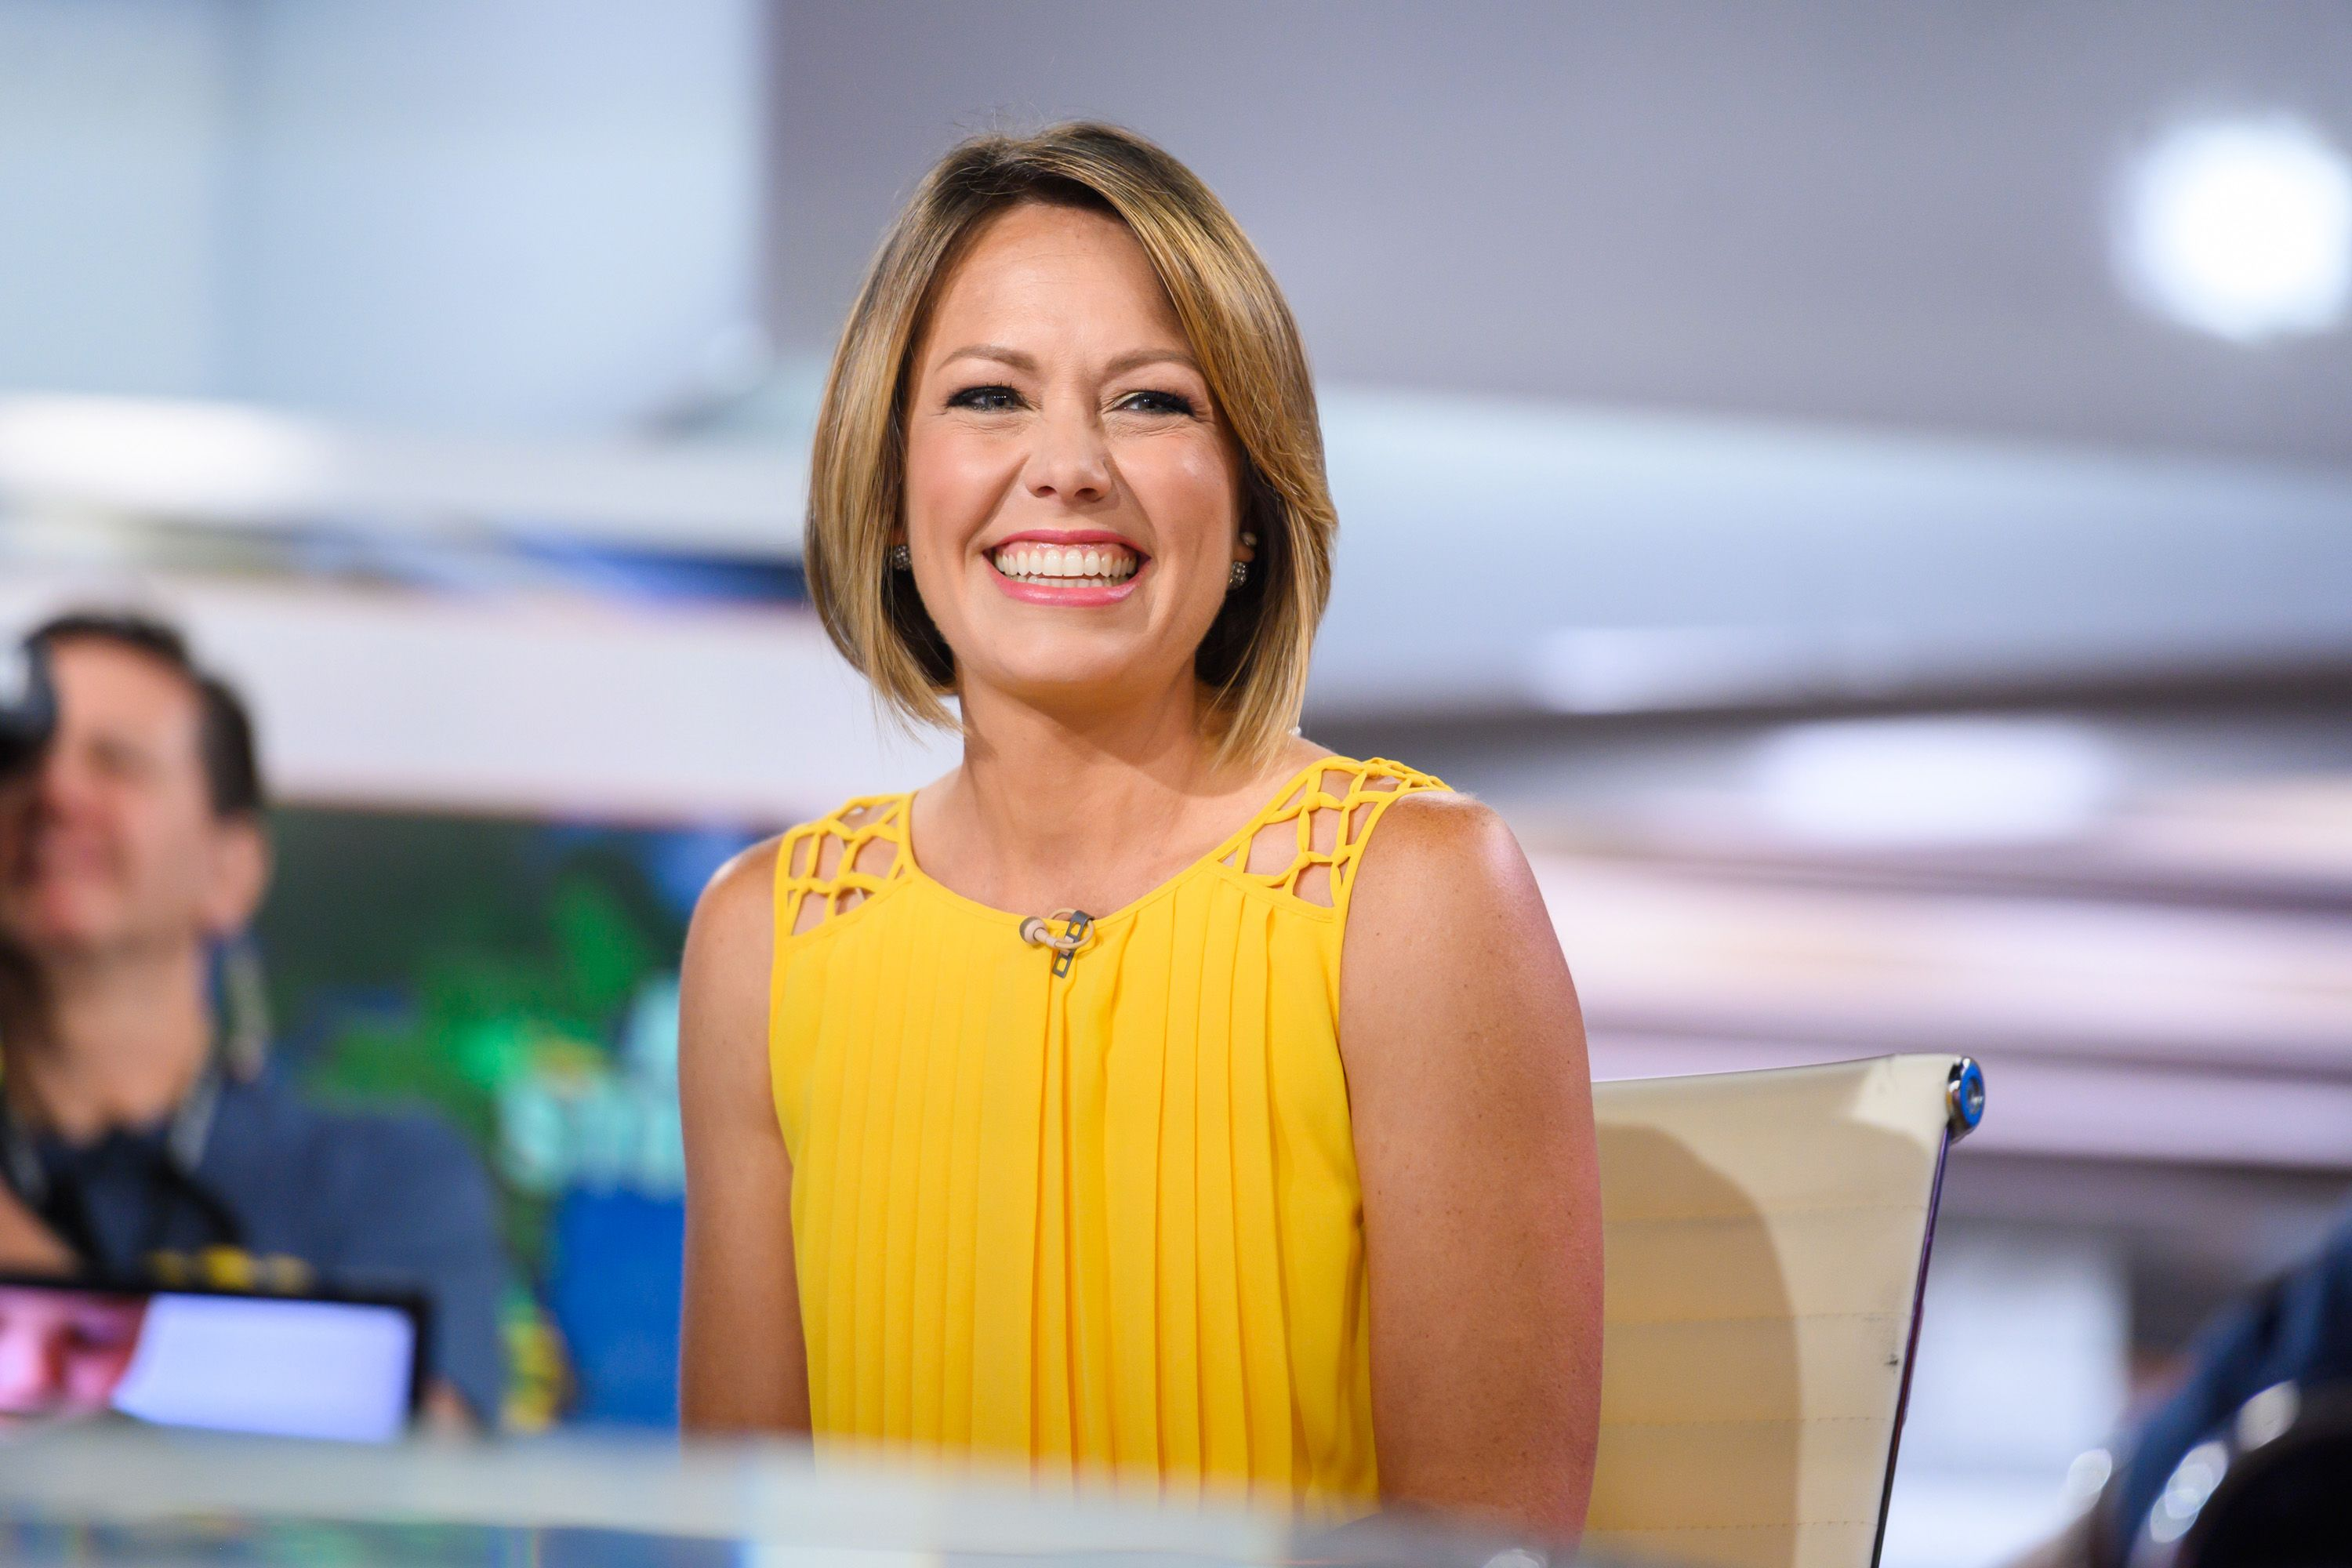 Today Show' Host Dylan Dreyer Gets Encouragement While On ...